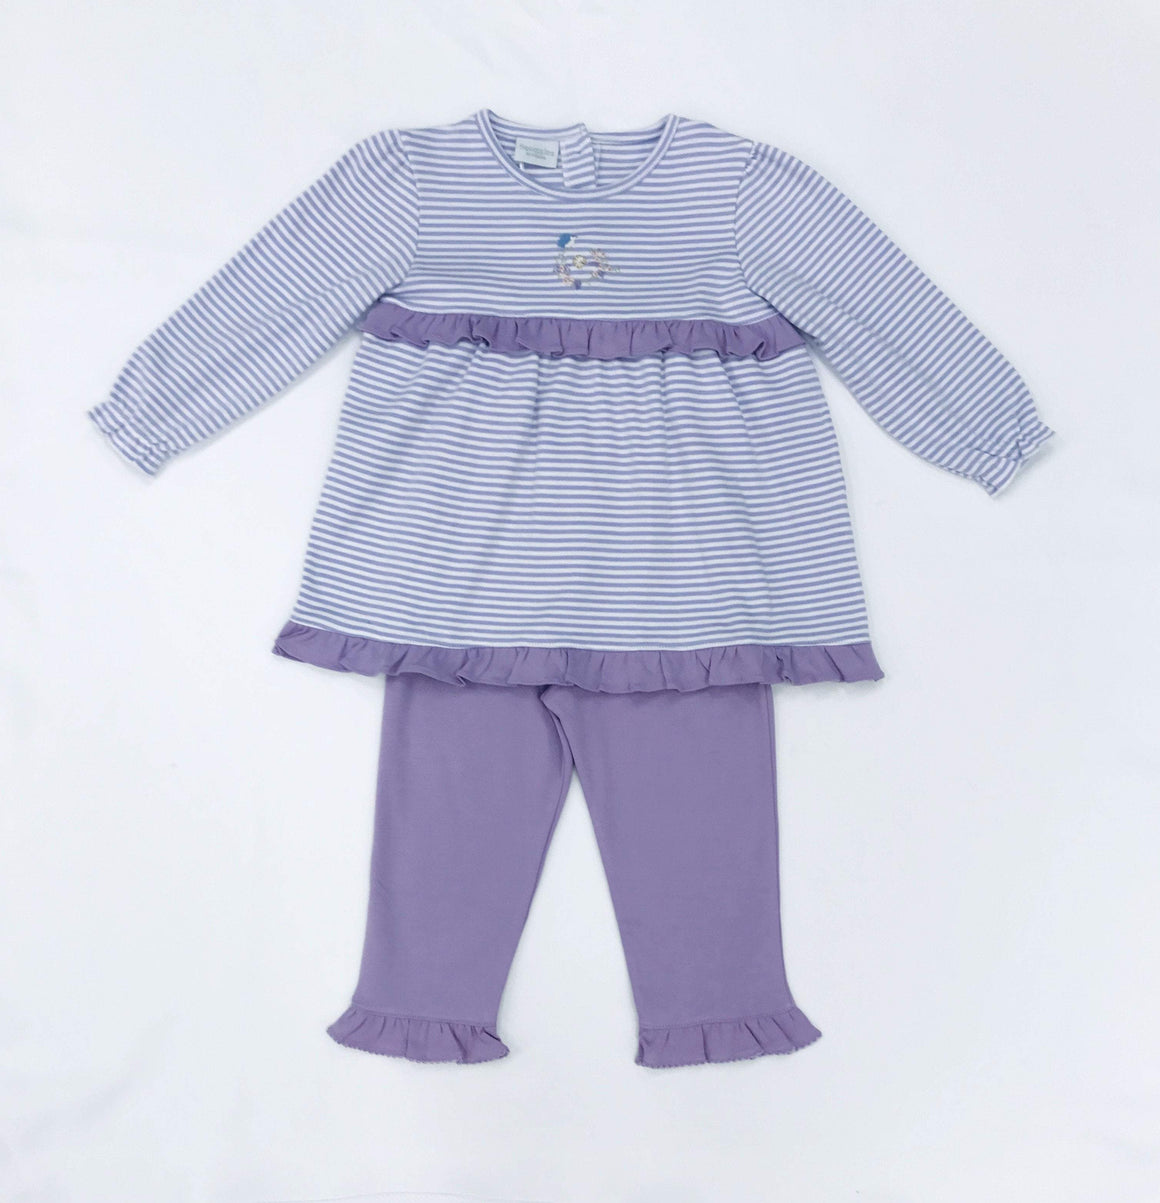 Squiggles by Charlie Girls Apparel 2T / Lavender Squiggles by Charlie Girl's Lavender Stripe with Bird's Nest Embroidered Ruffled Pant Set